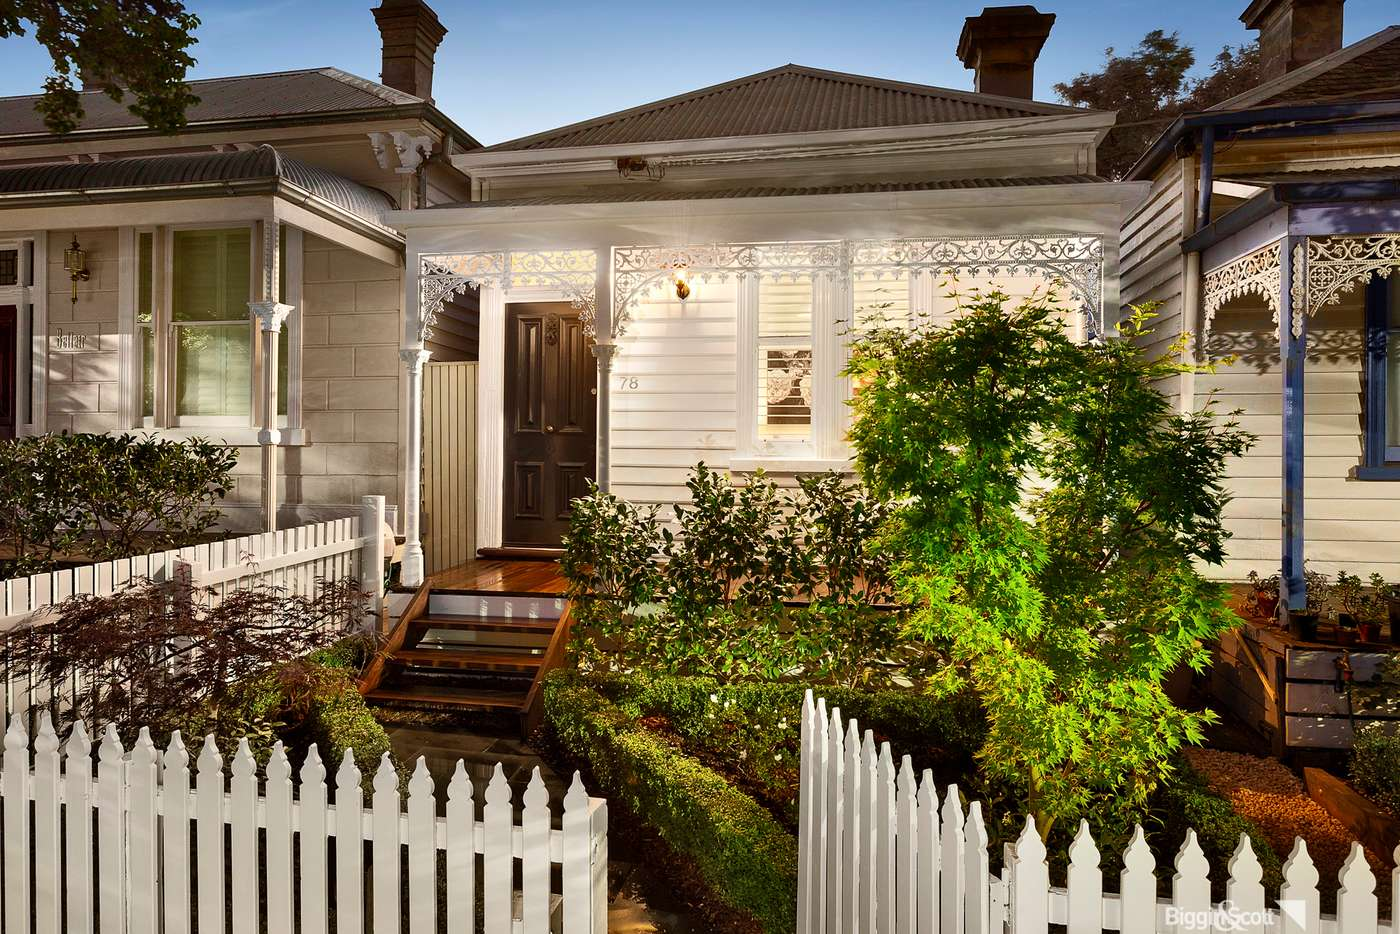 Main view of Homely house listing, 78 Bellair Street, Kensington VIC 3031